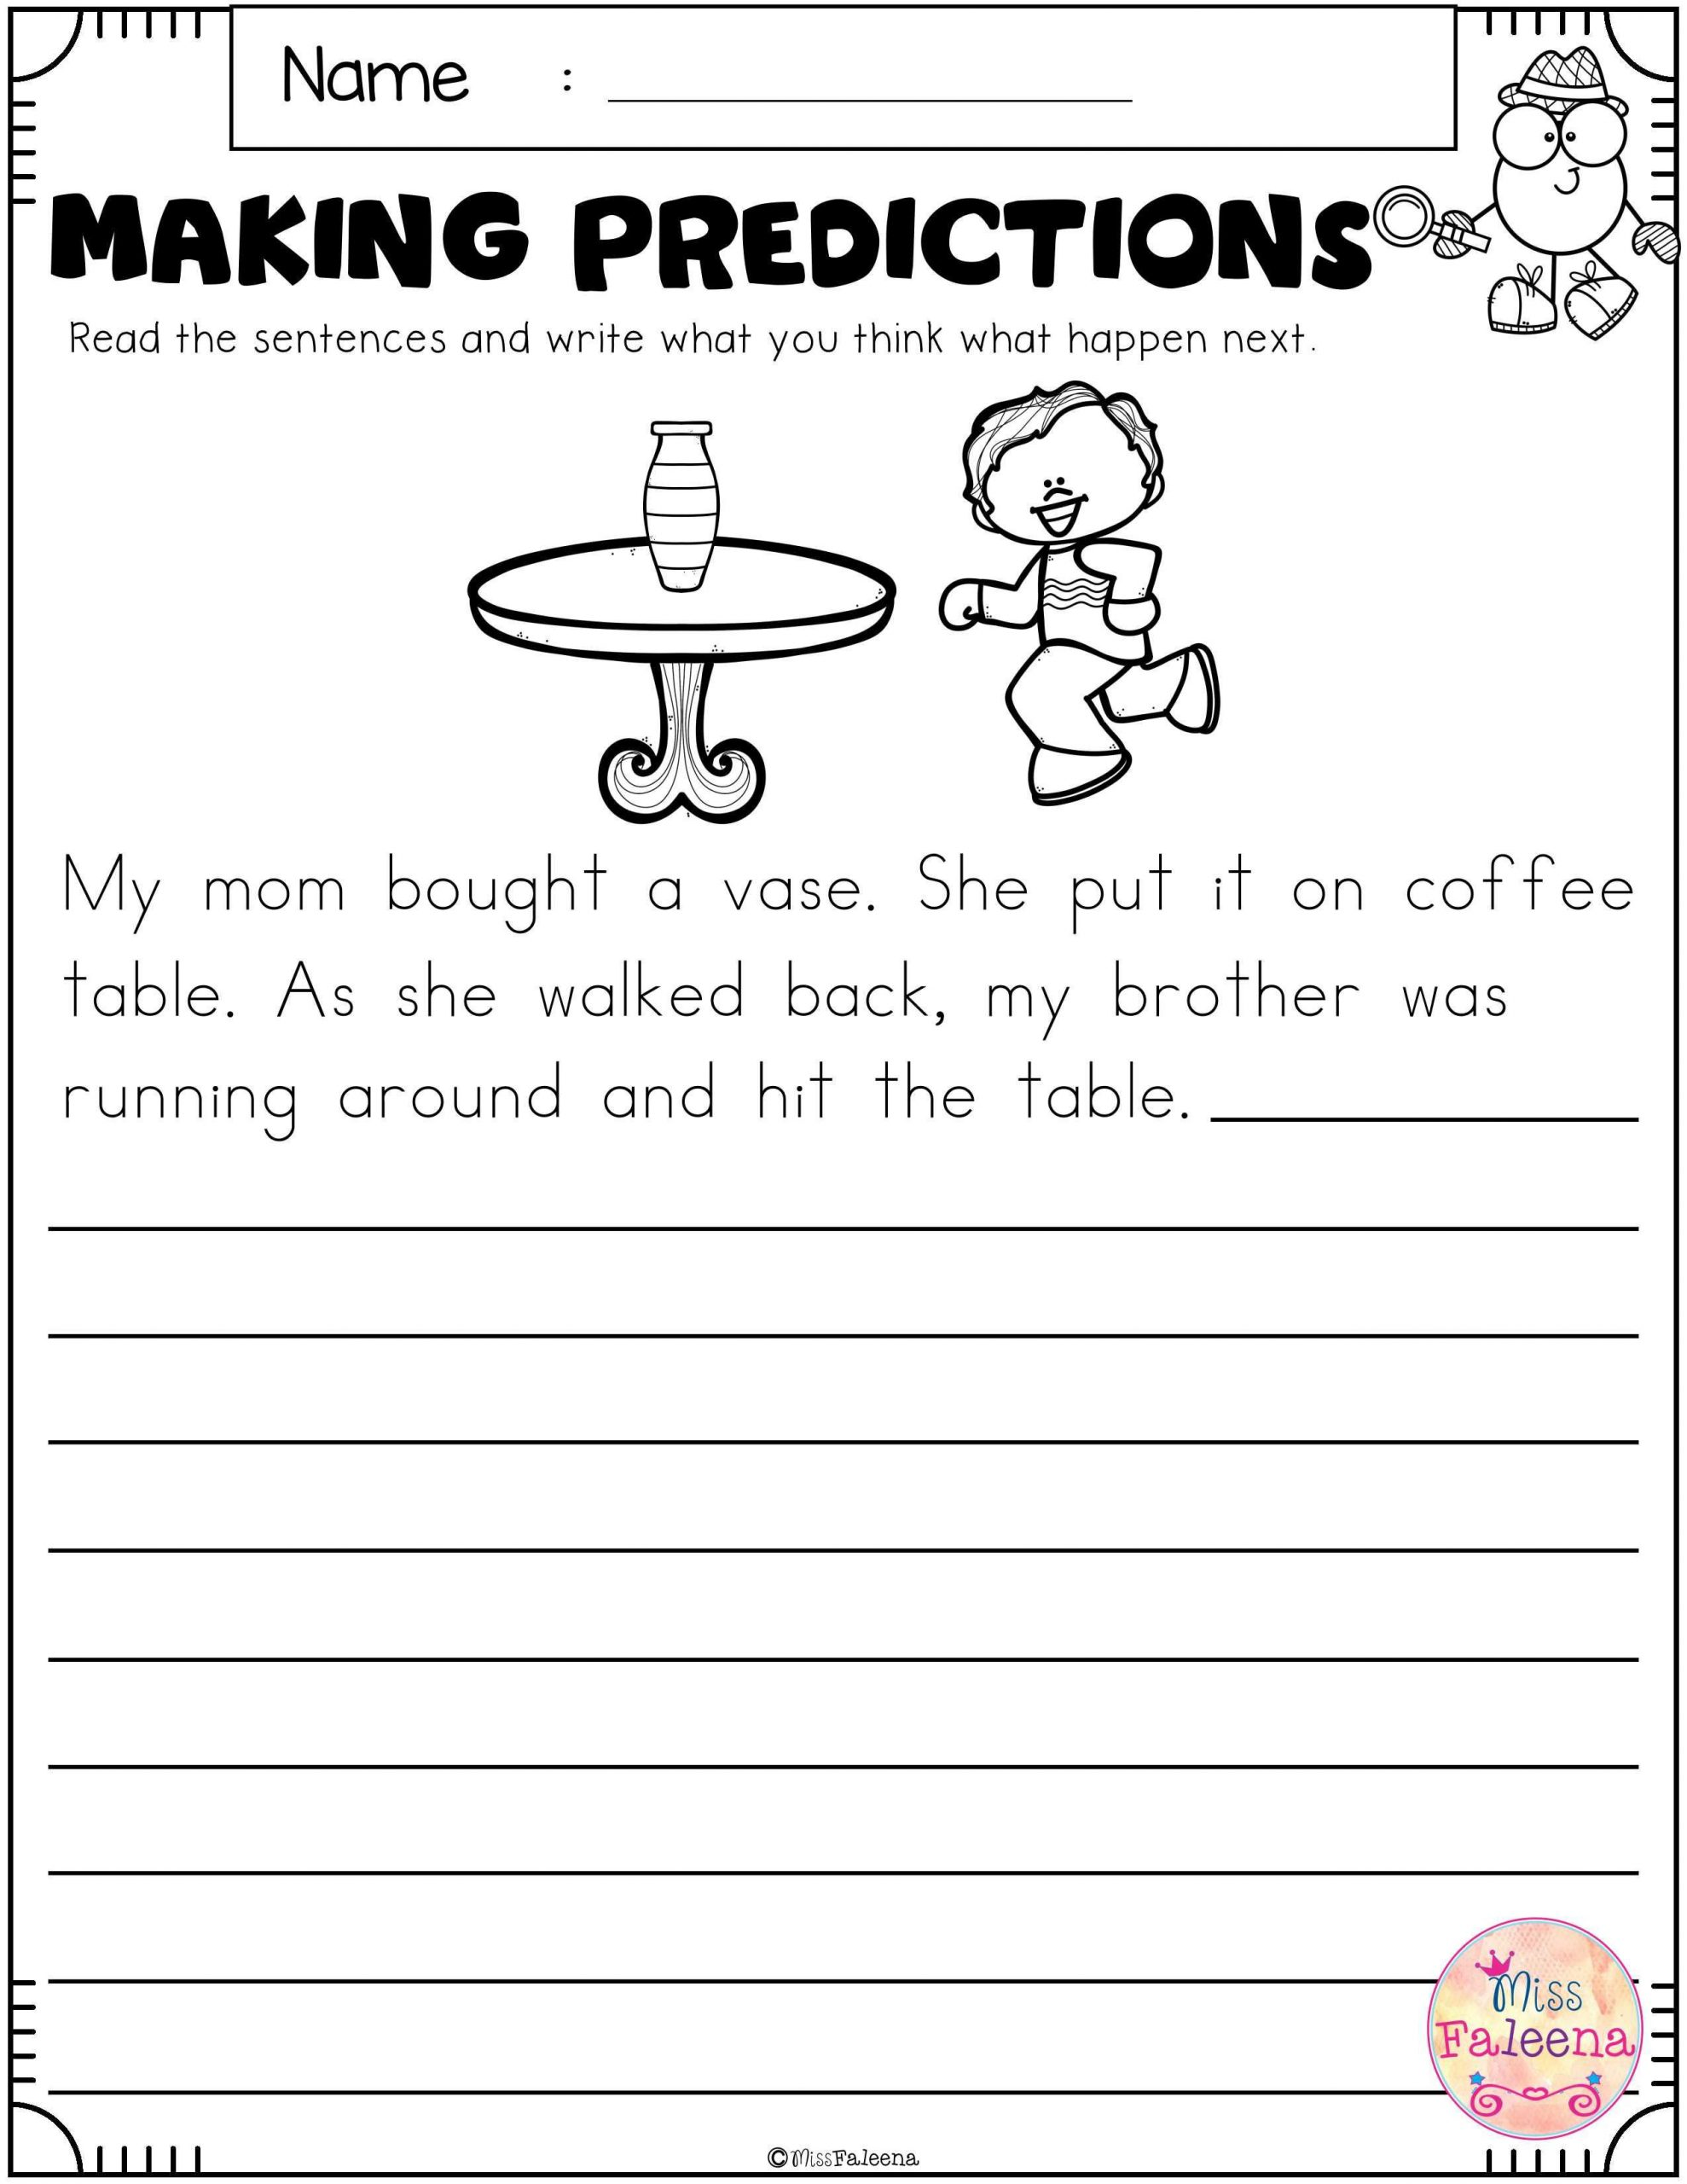 Prediction Worksheets 2nd Grade Free Making Predictions with Images